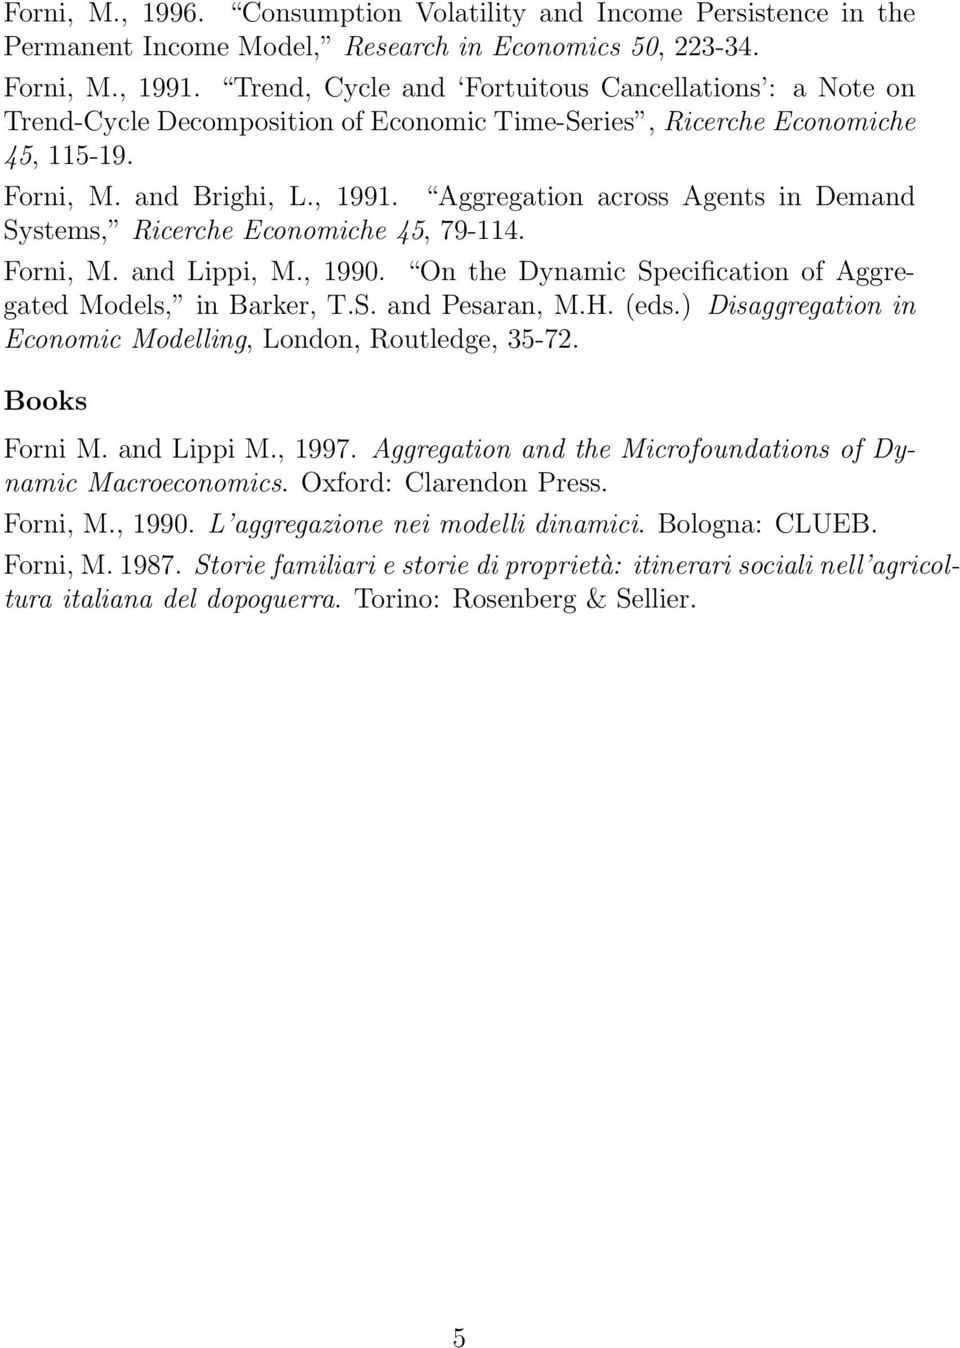 Aggregation across Agents in Demand Systems, Ricerche Economiche 45, 79-114. Forni, M. and Lippi, M., 1990. On the Dynamic Specification of Aggregated Models, in Barker, T.S. and Pesaran, M.H. (eds.